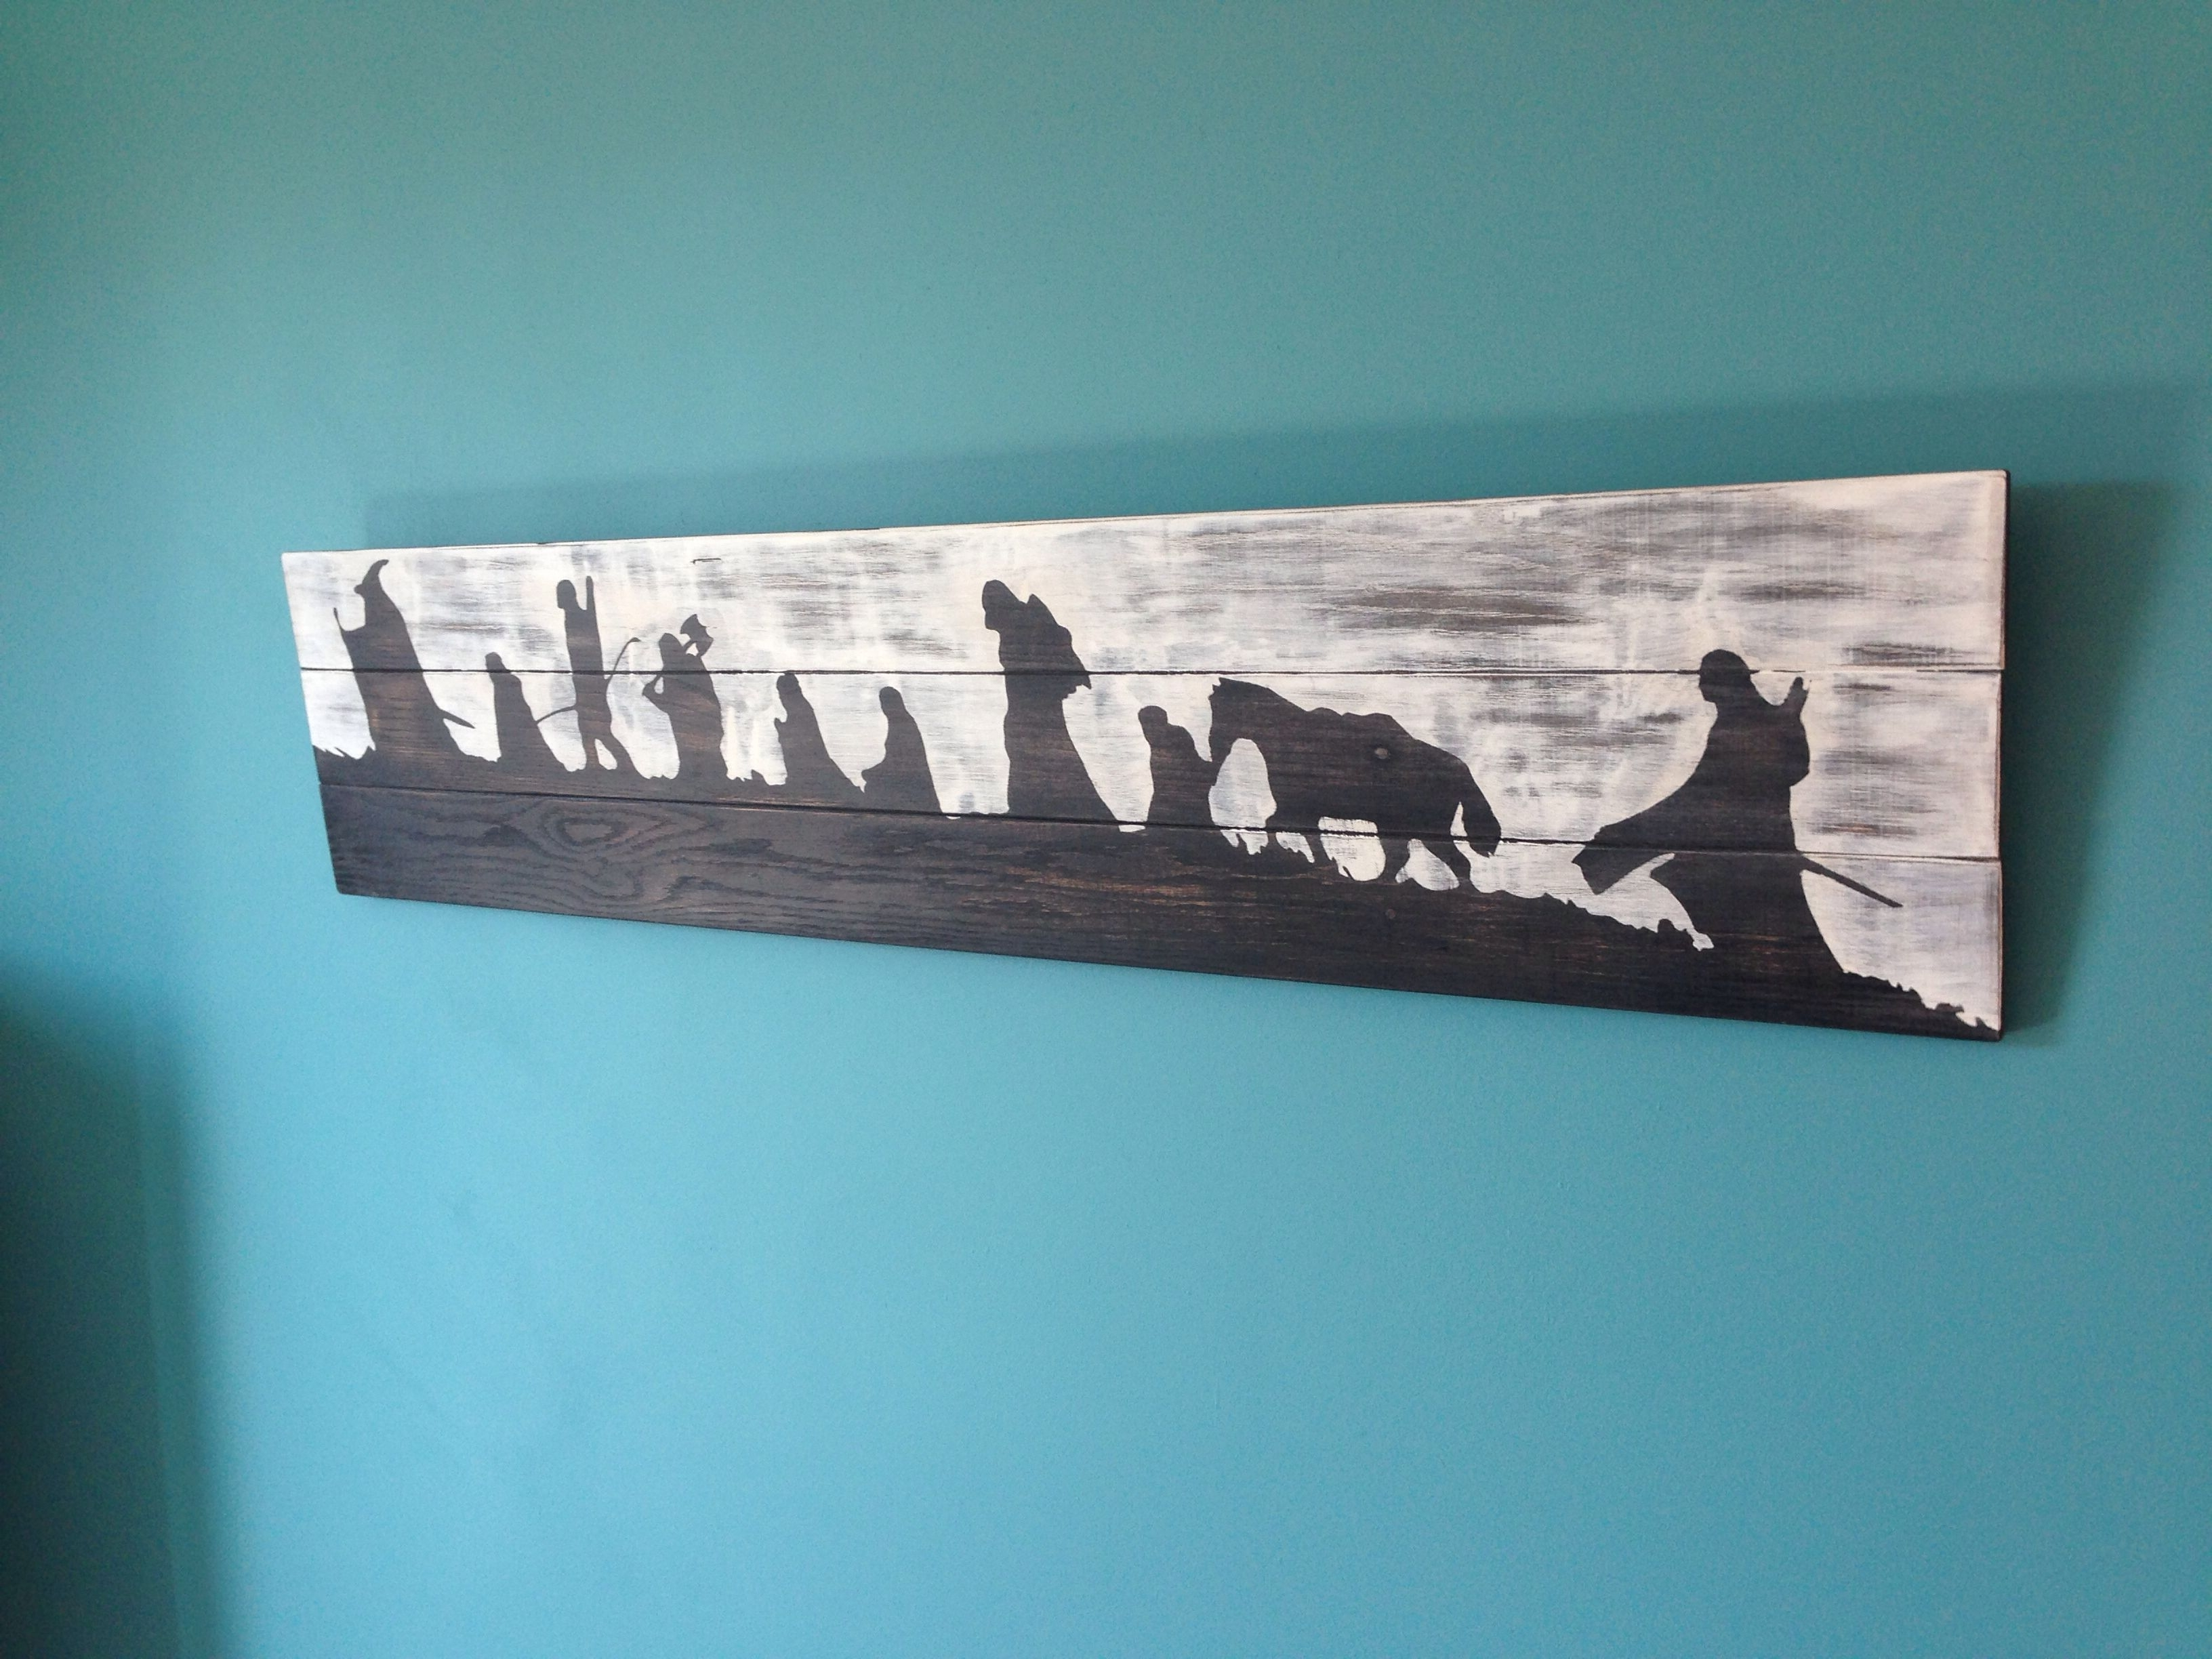 Lord Of The Rings Wall Art Pertaining To 2018 Lord Of The Rings Wall Art (View 8 of 20)